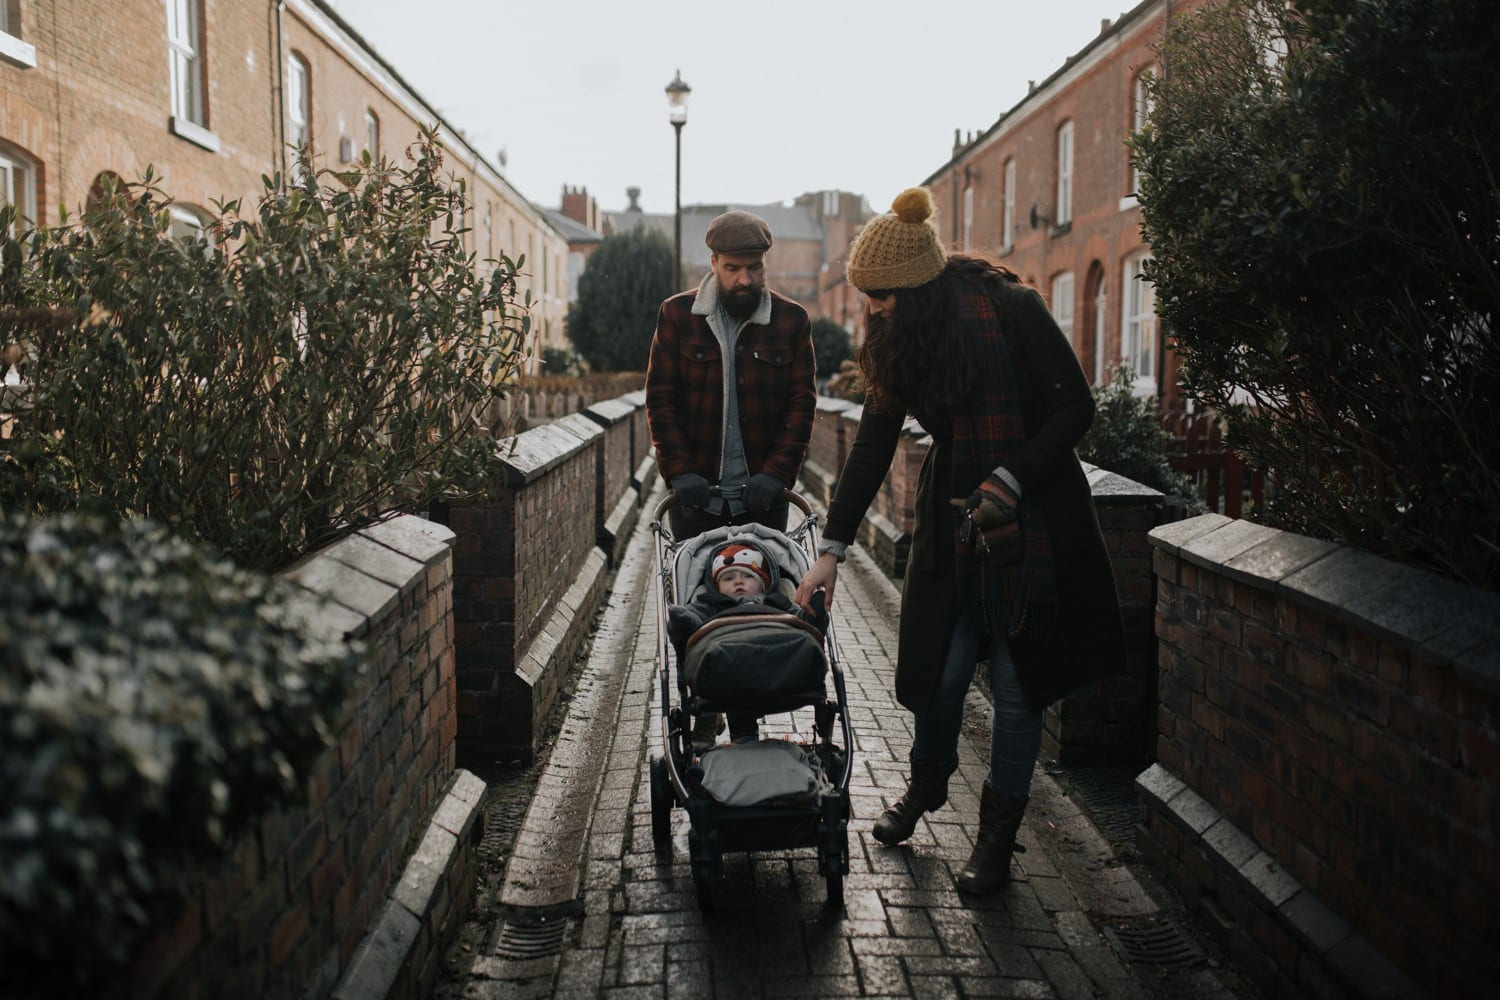 Parents in the alleyway in Stretford taken by a lifestyle family photographer